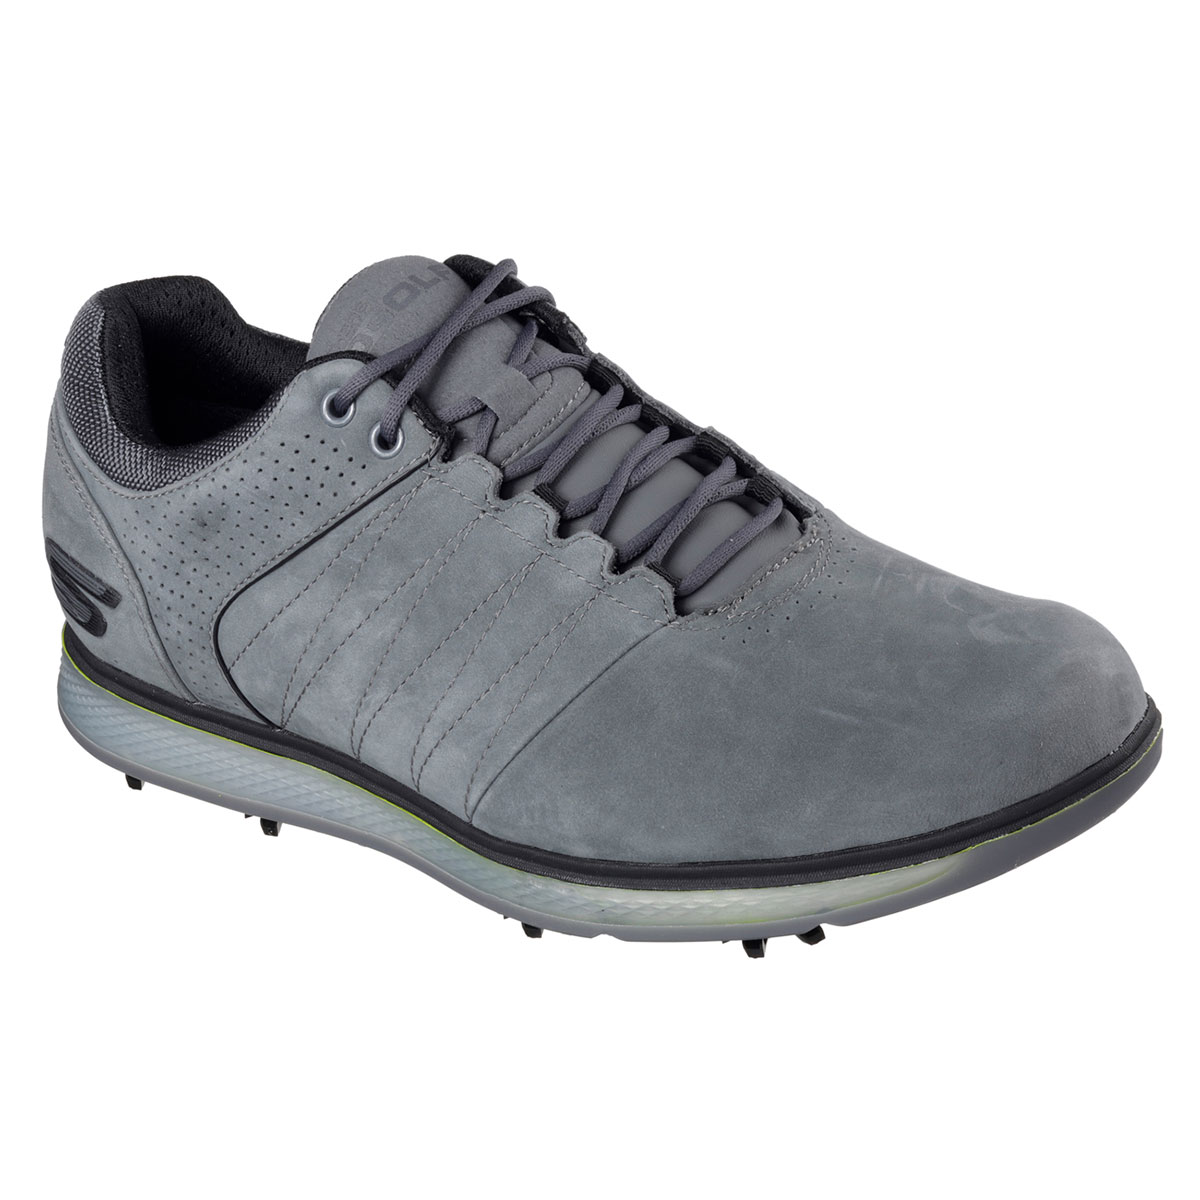 Skechers-Golf-2017-Mens-GO-Pro-2-LX-Golf-Shoes-Cushioning-Waterproof-Traction